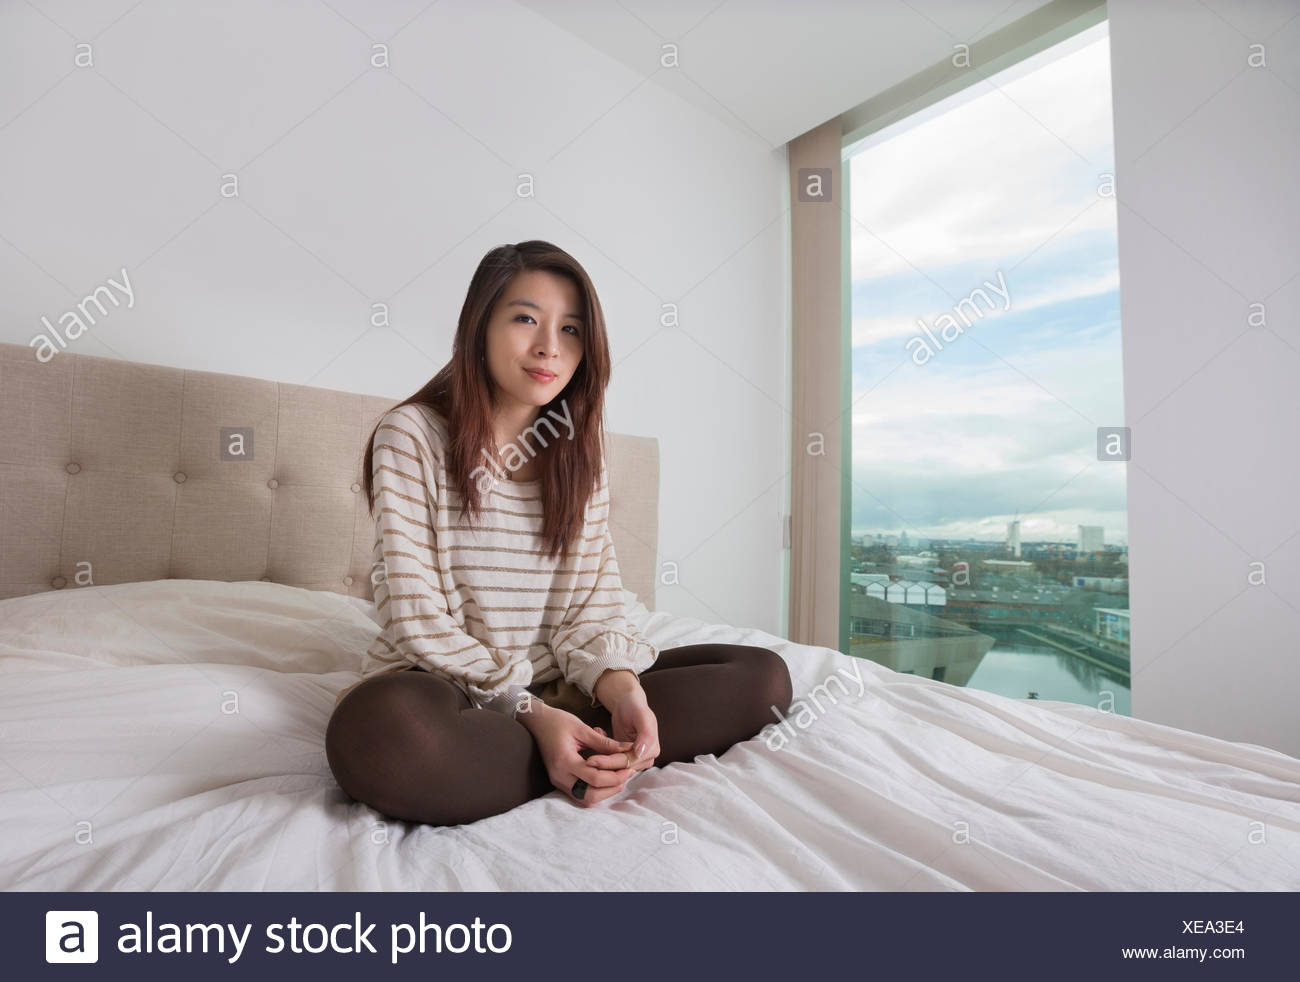 Portrait of beautiful young woman sitting on bed - Stock Image